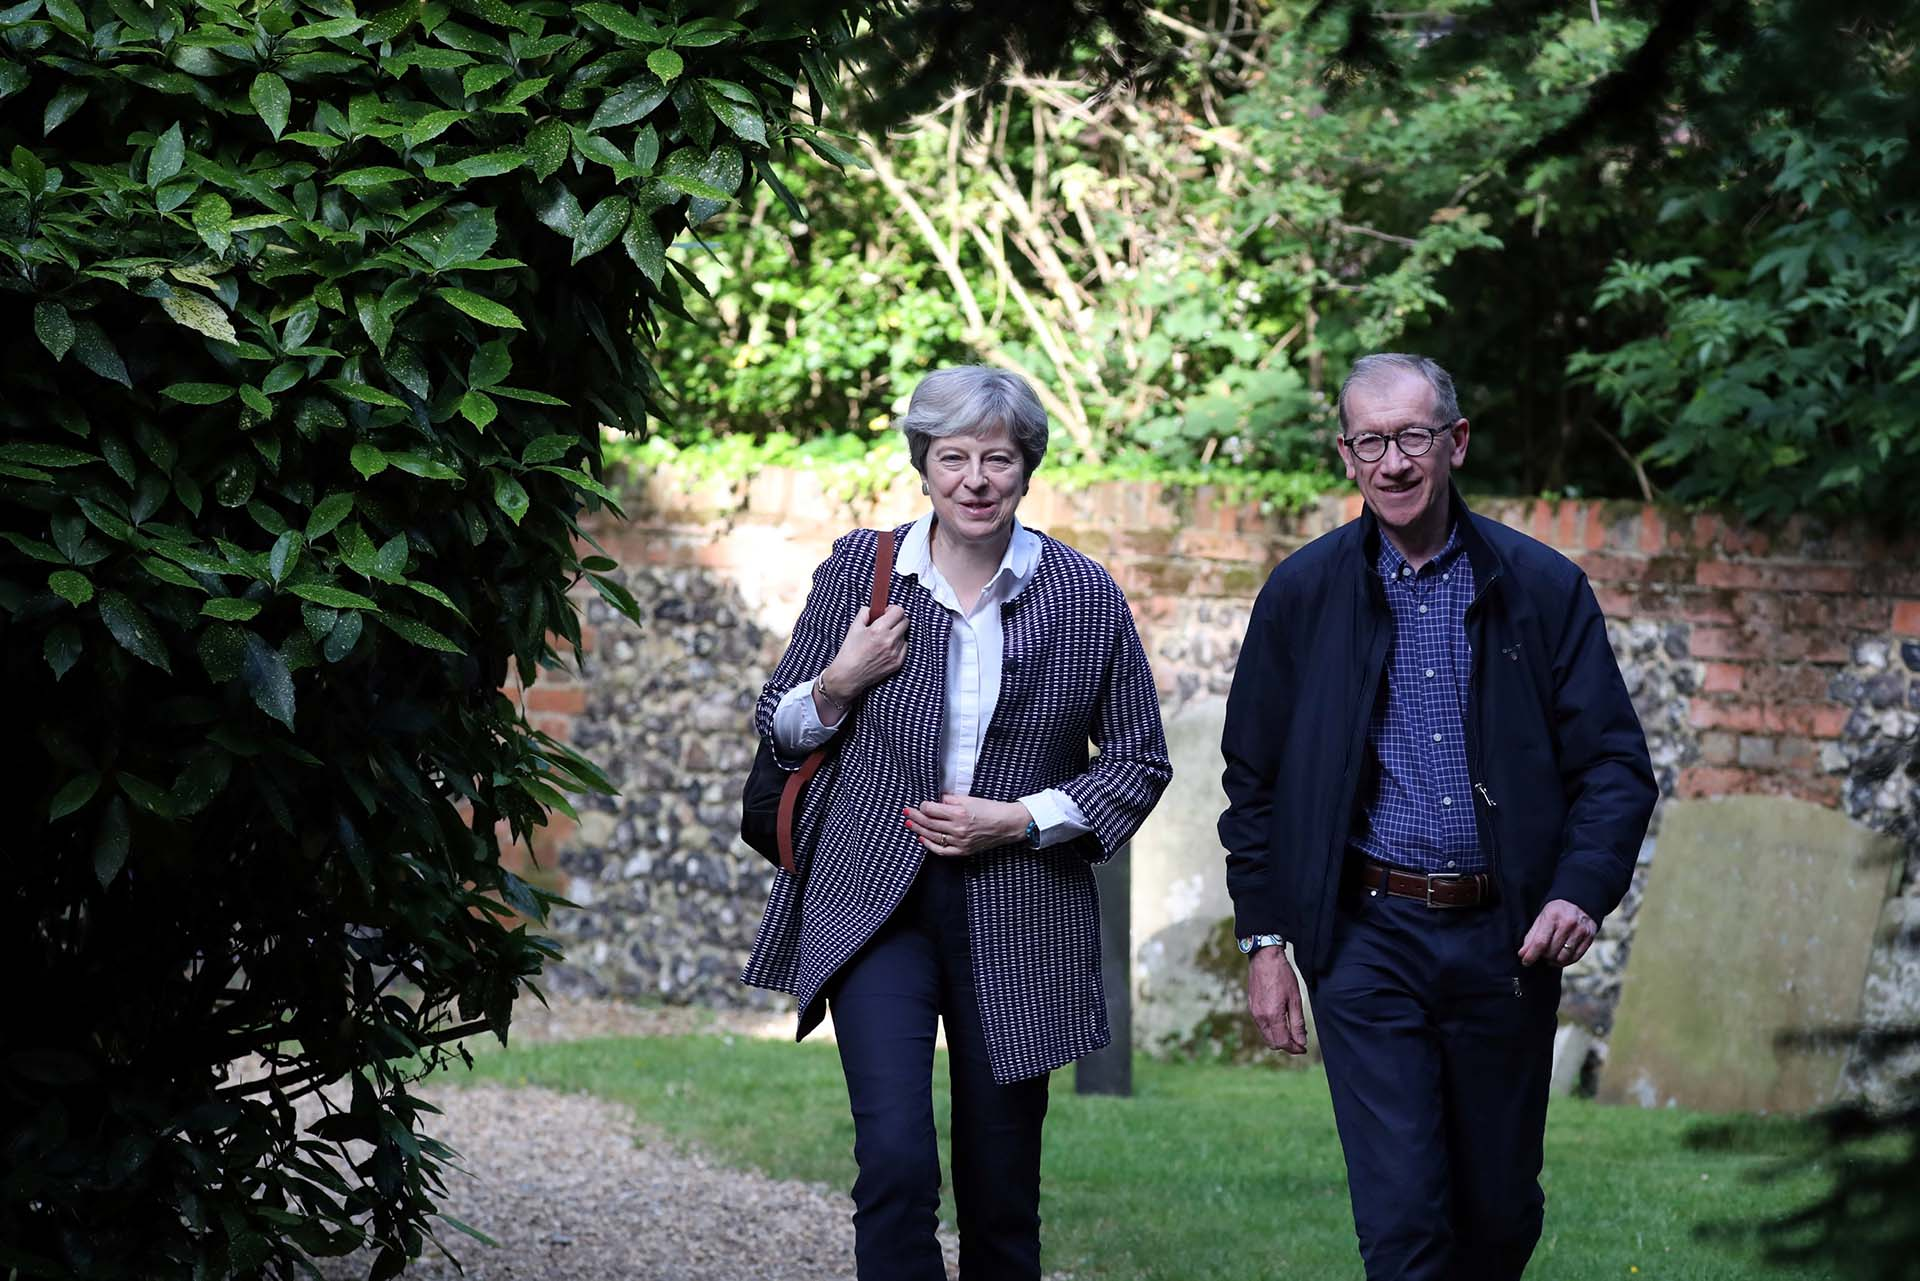 Theresa May y su esposo Philli llegan a una iglesia en Sonning (Reuters)